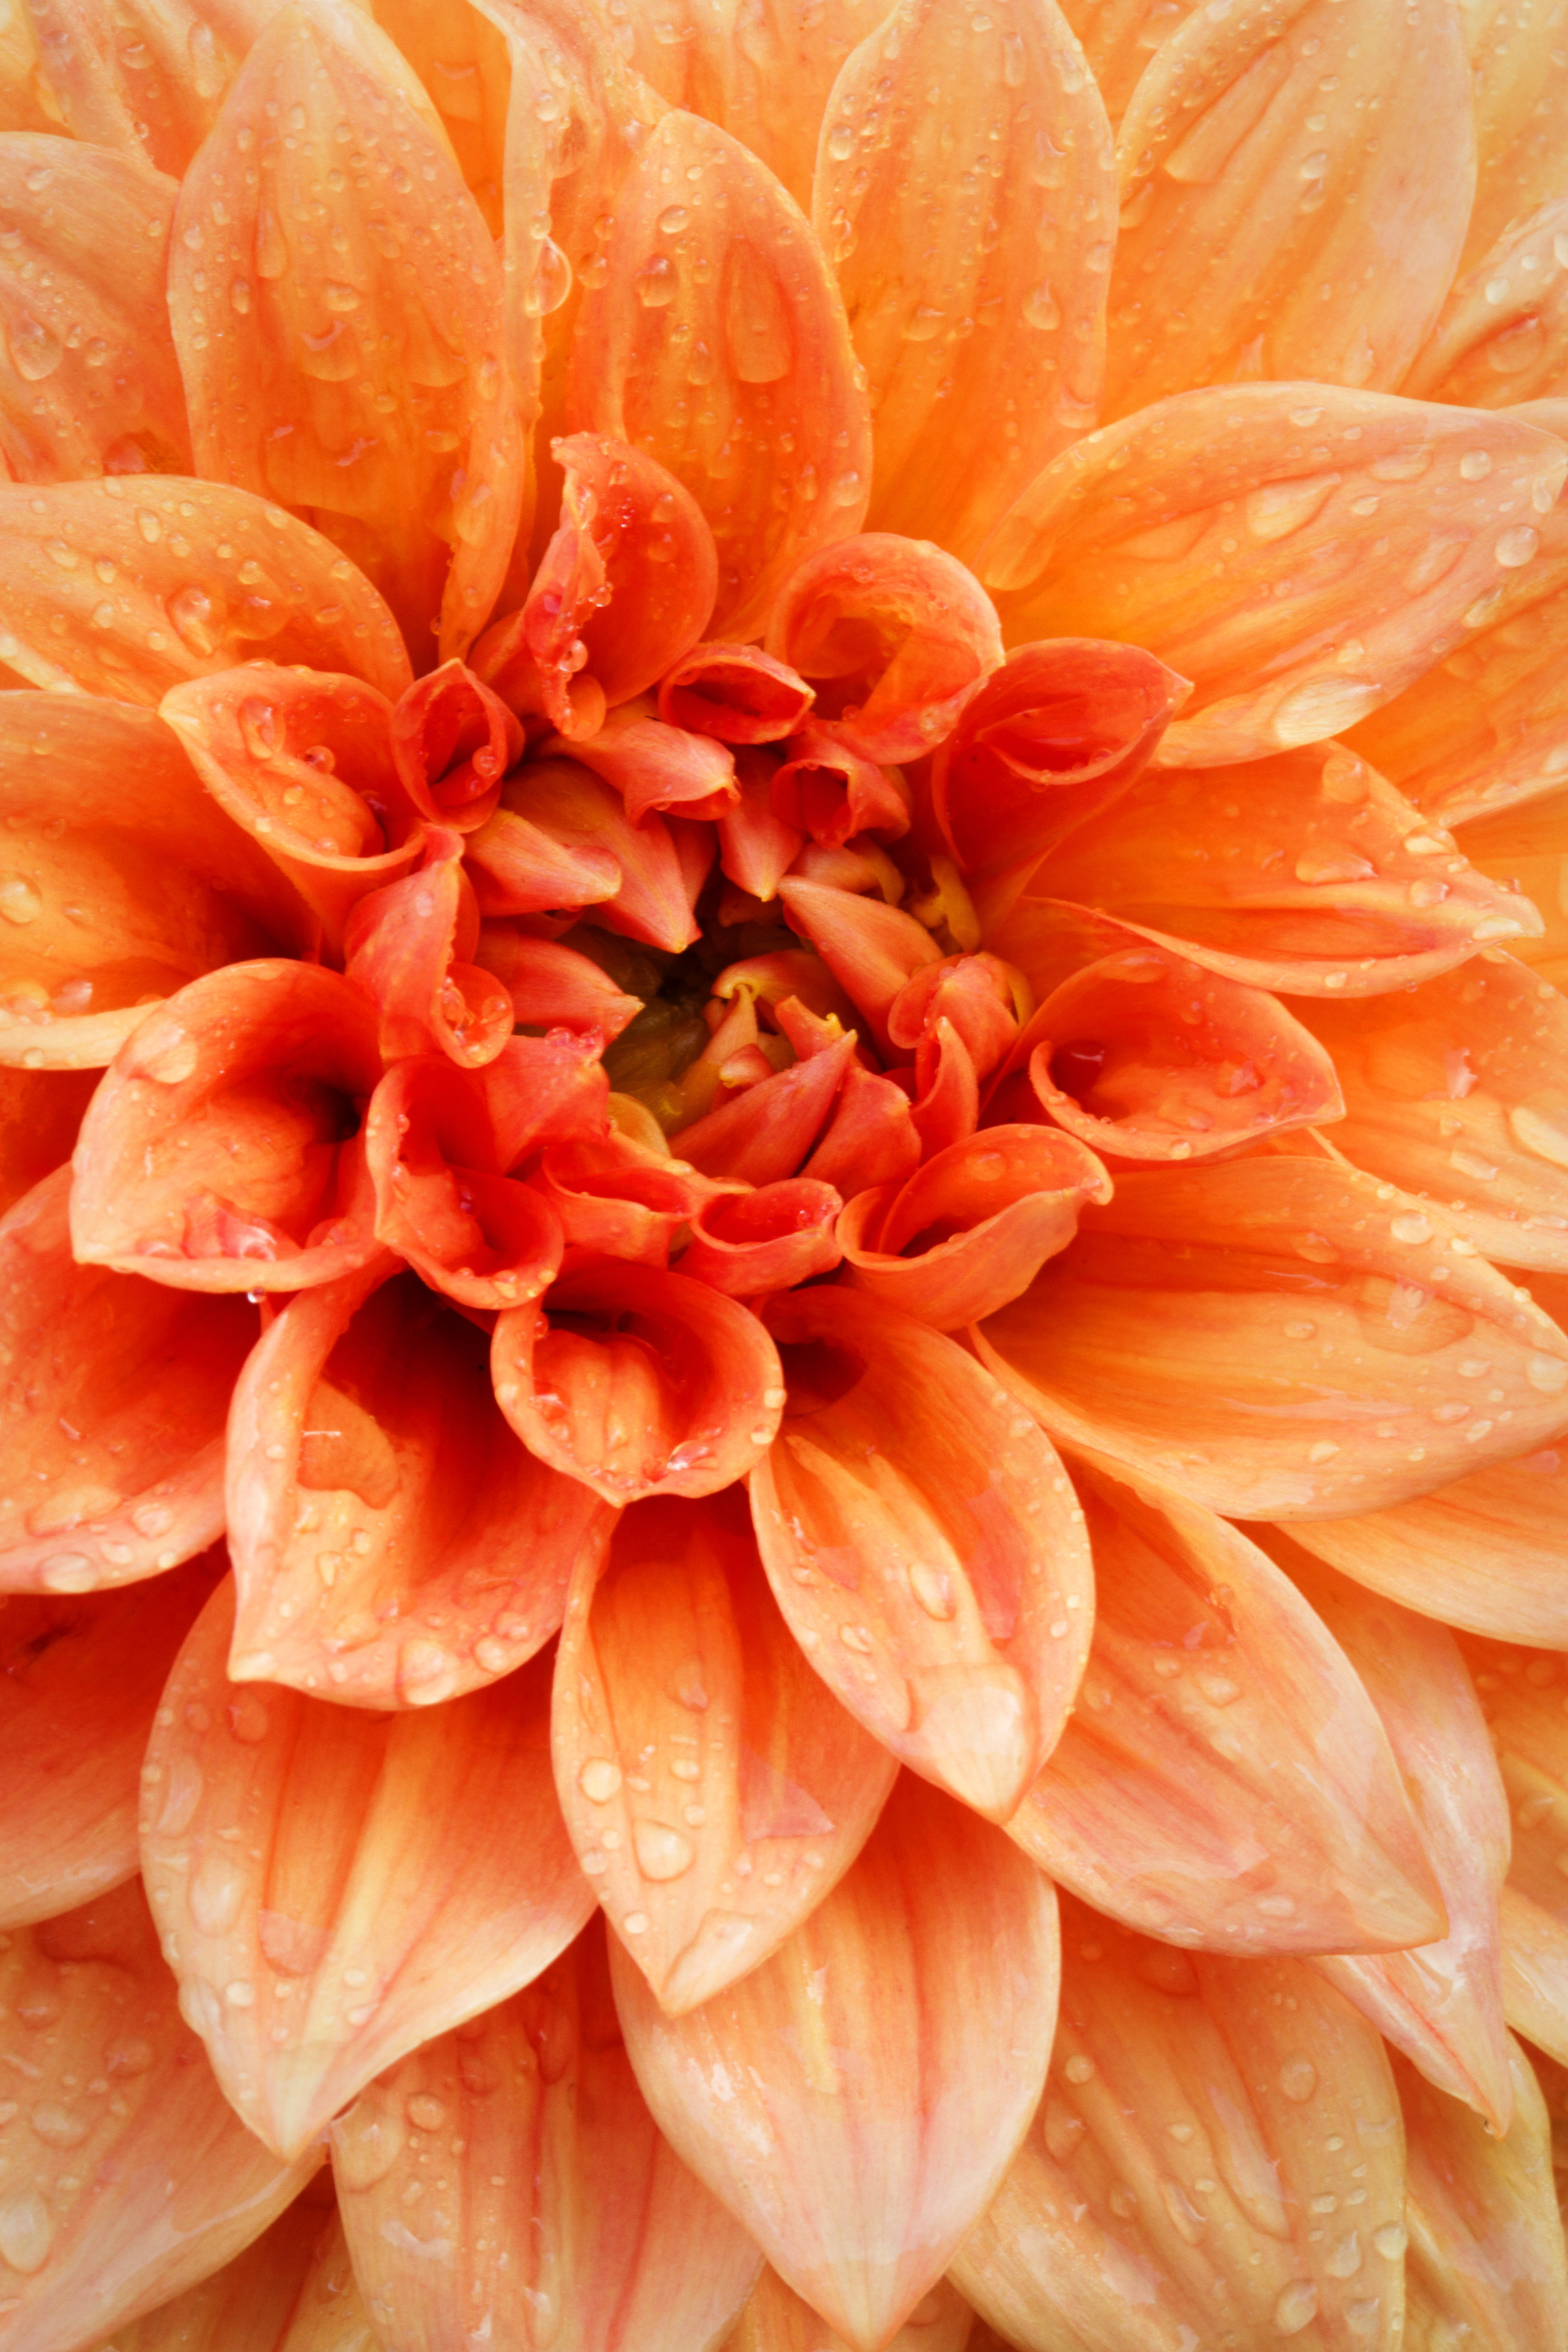 Rain drops collect on the delicate petals of a Dahlia flower.